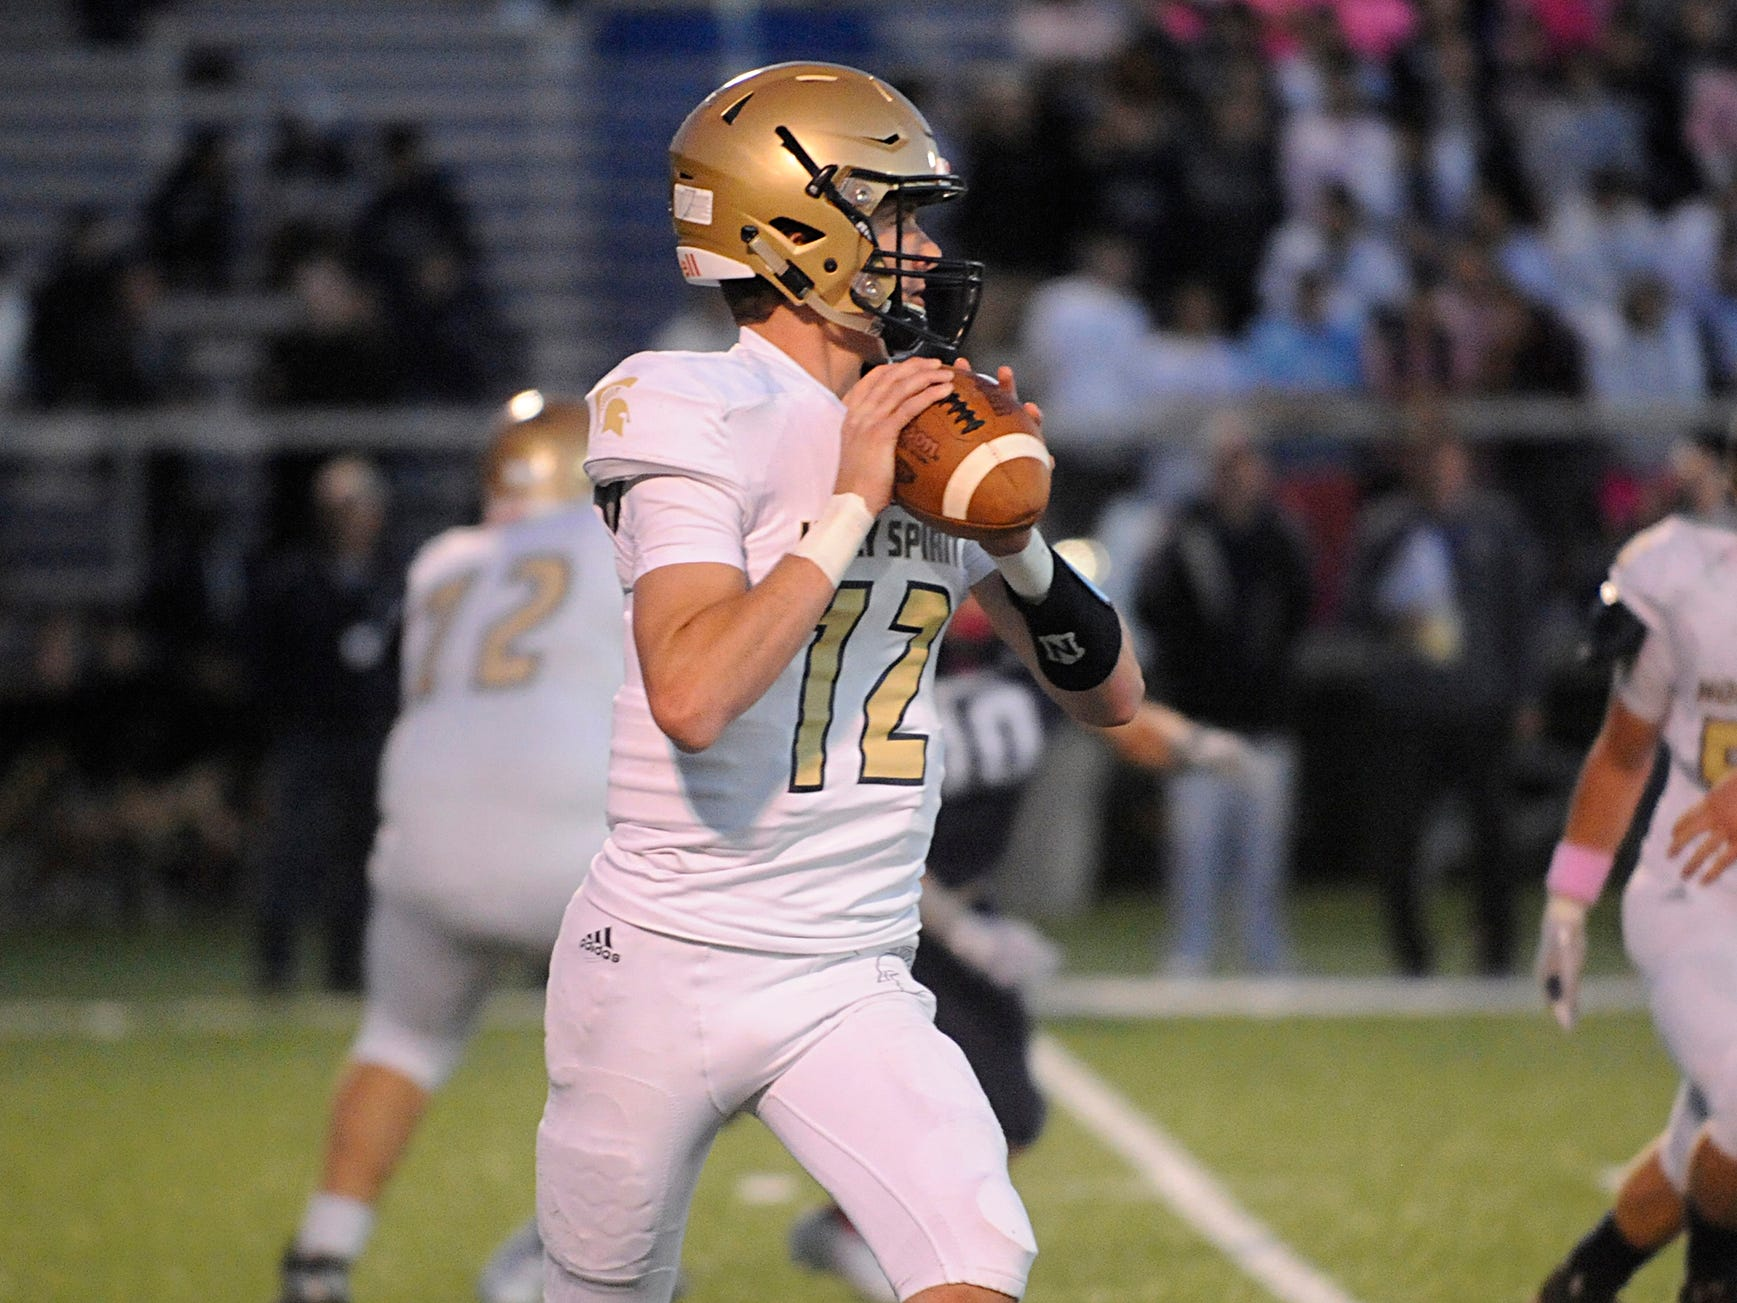 Holy Spirit's QB, Ryan Yost throws for a completion against St. Augustine. The Hermits defeated the visiting Spartans, 27-14 on Friday, October 12, 2018.